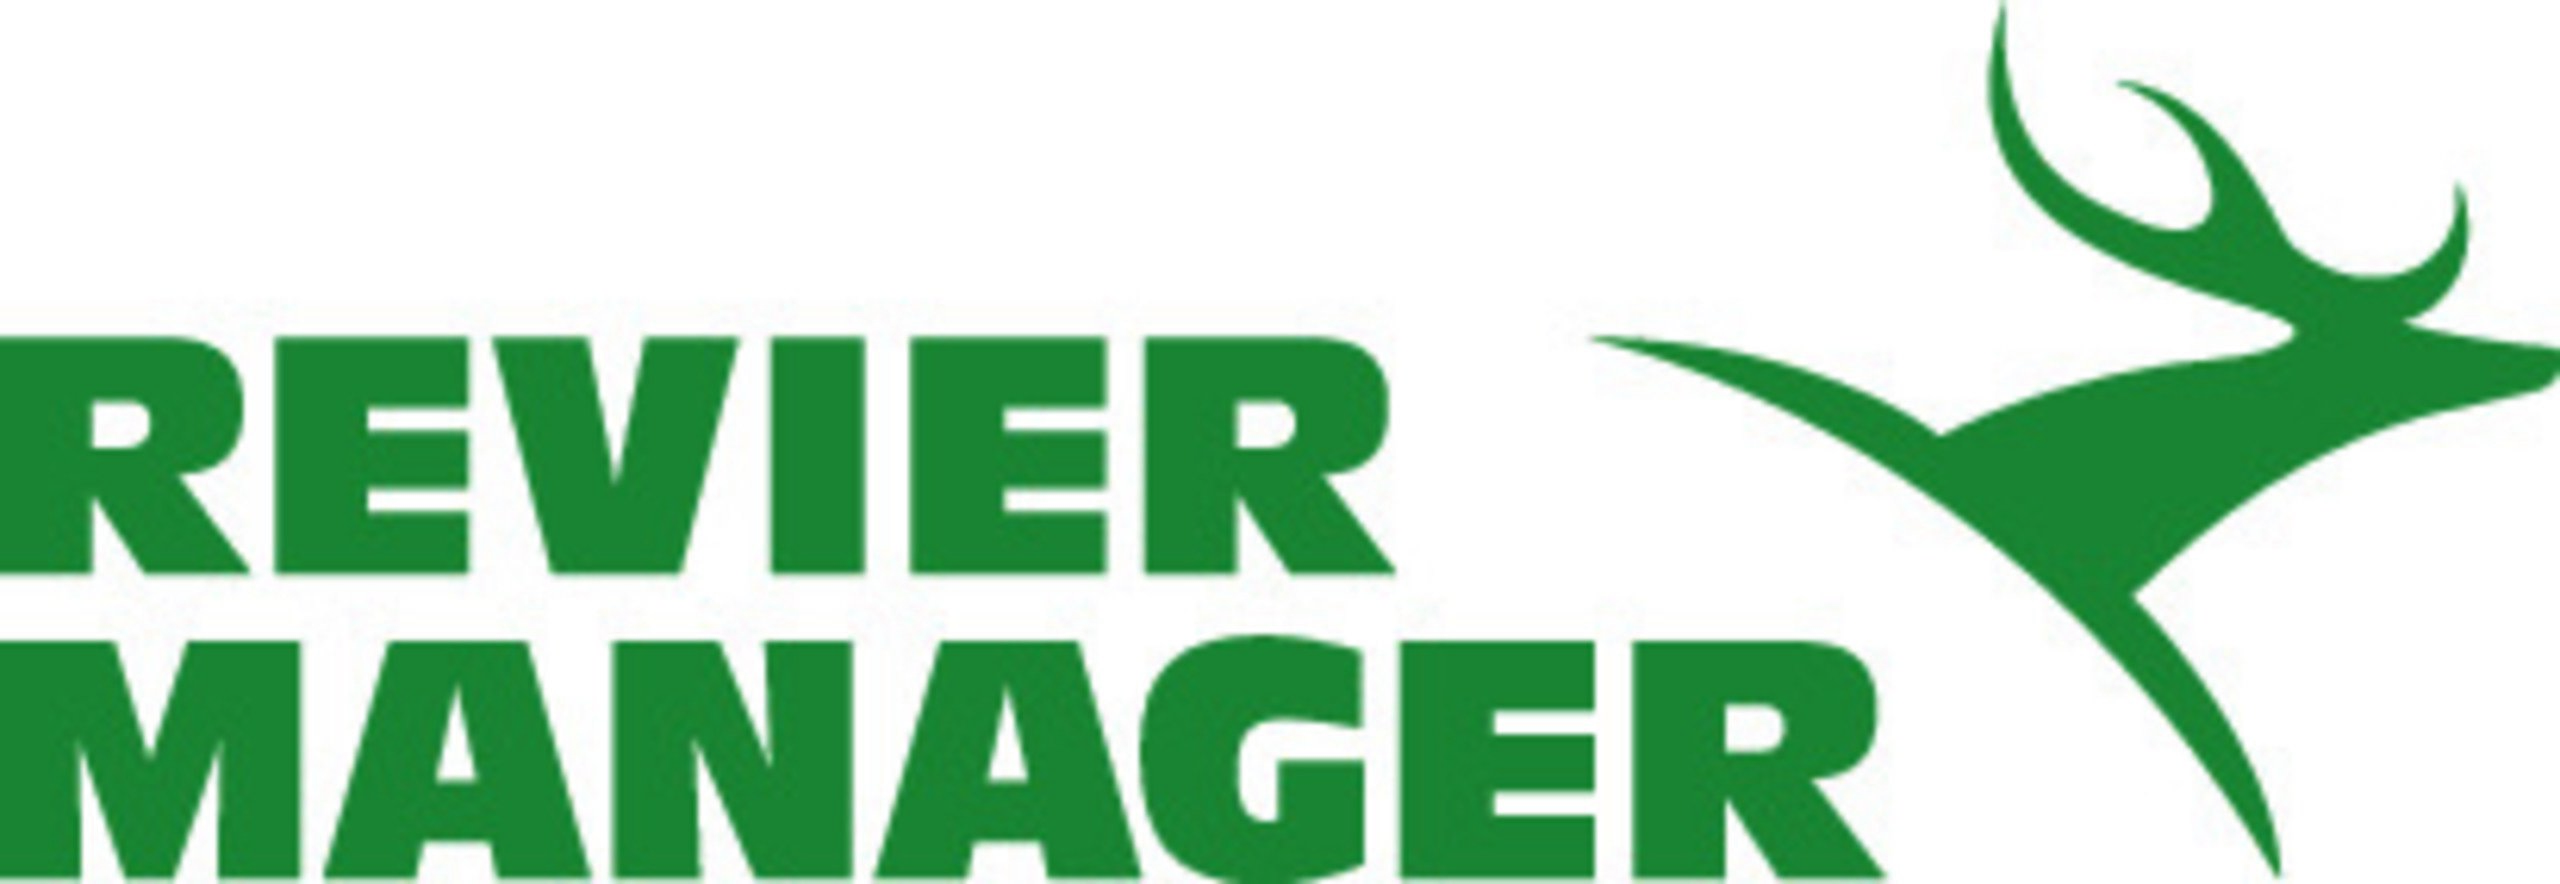 Reviermanager